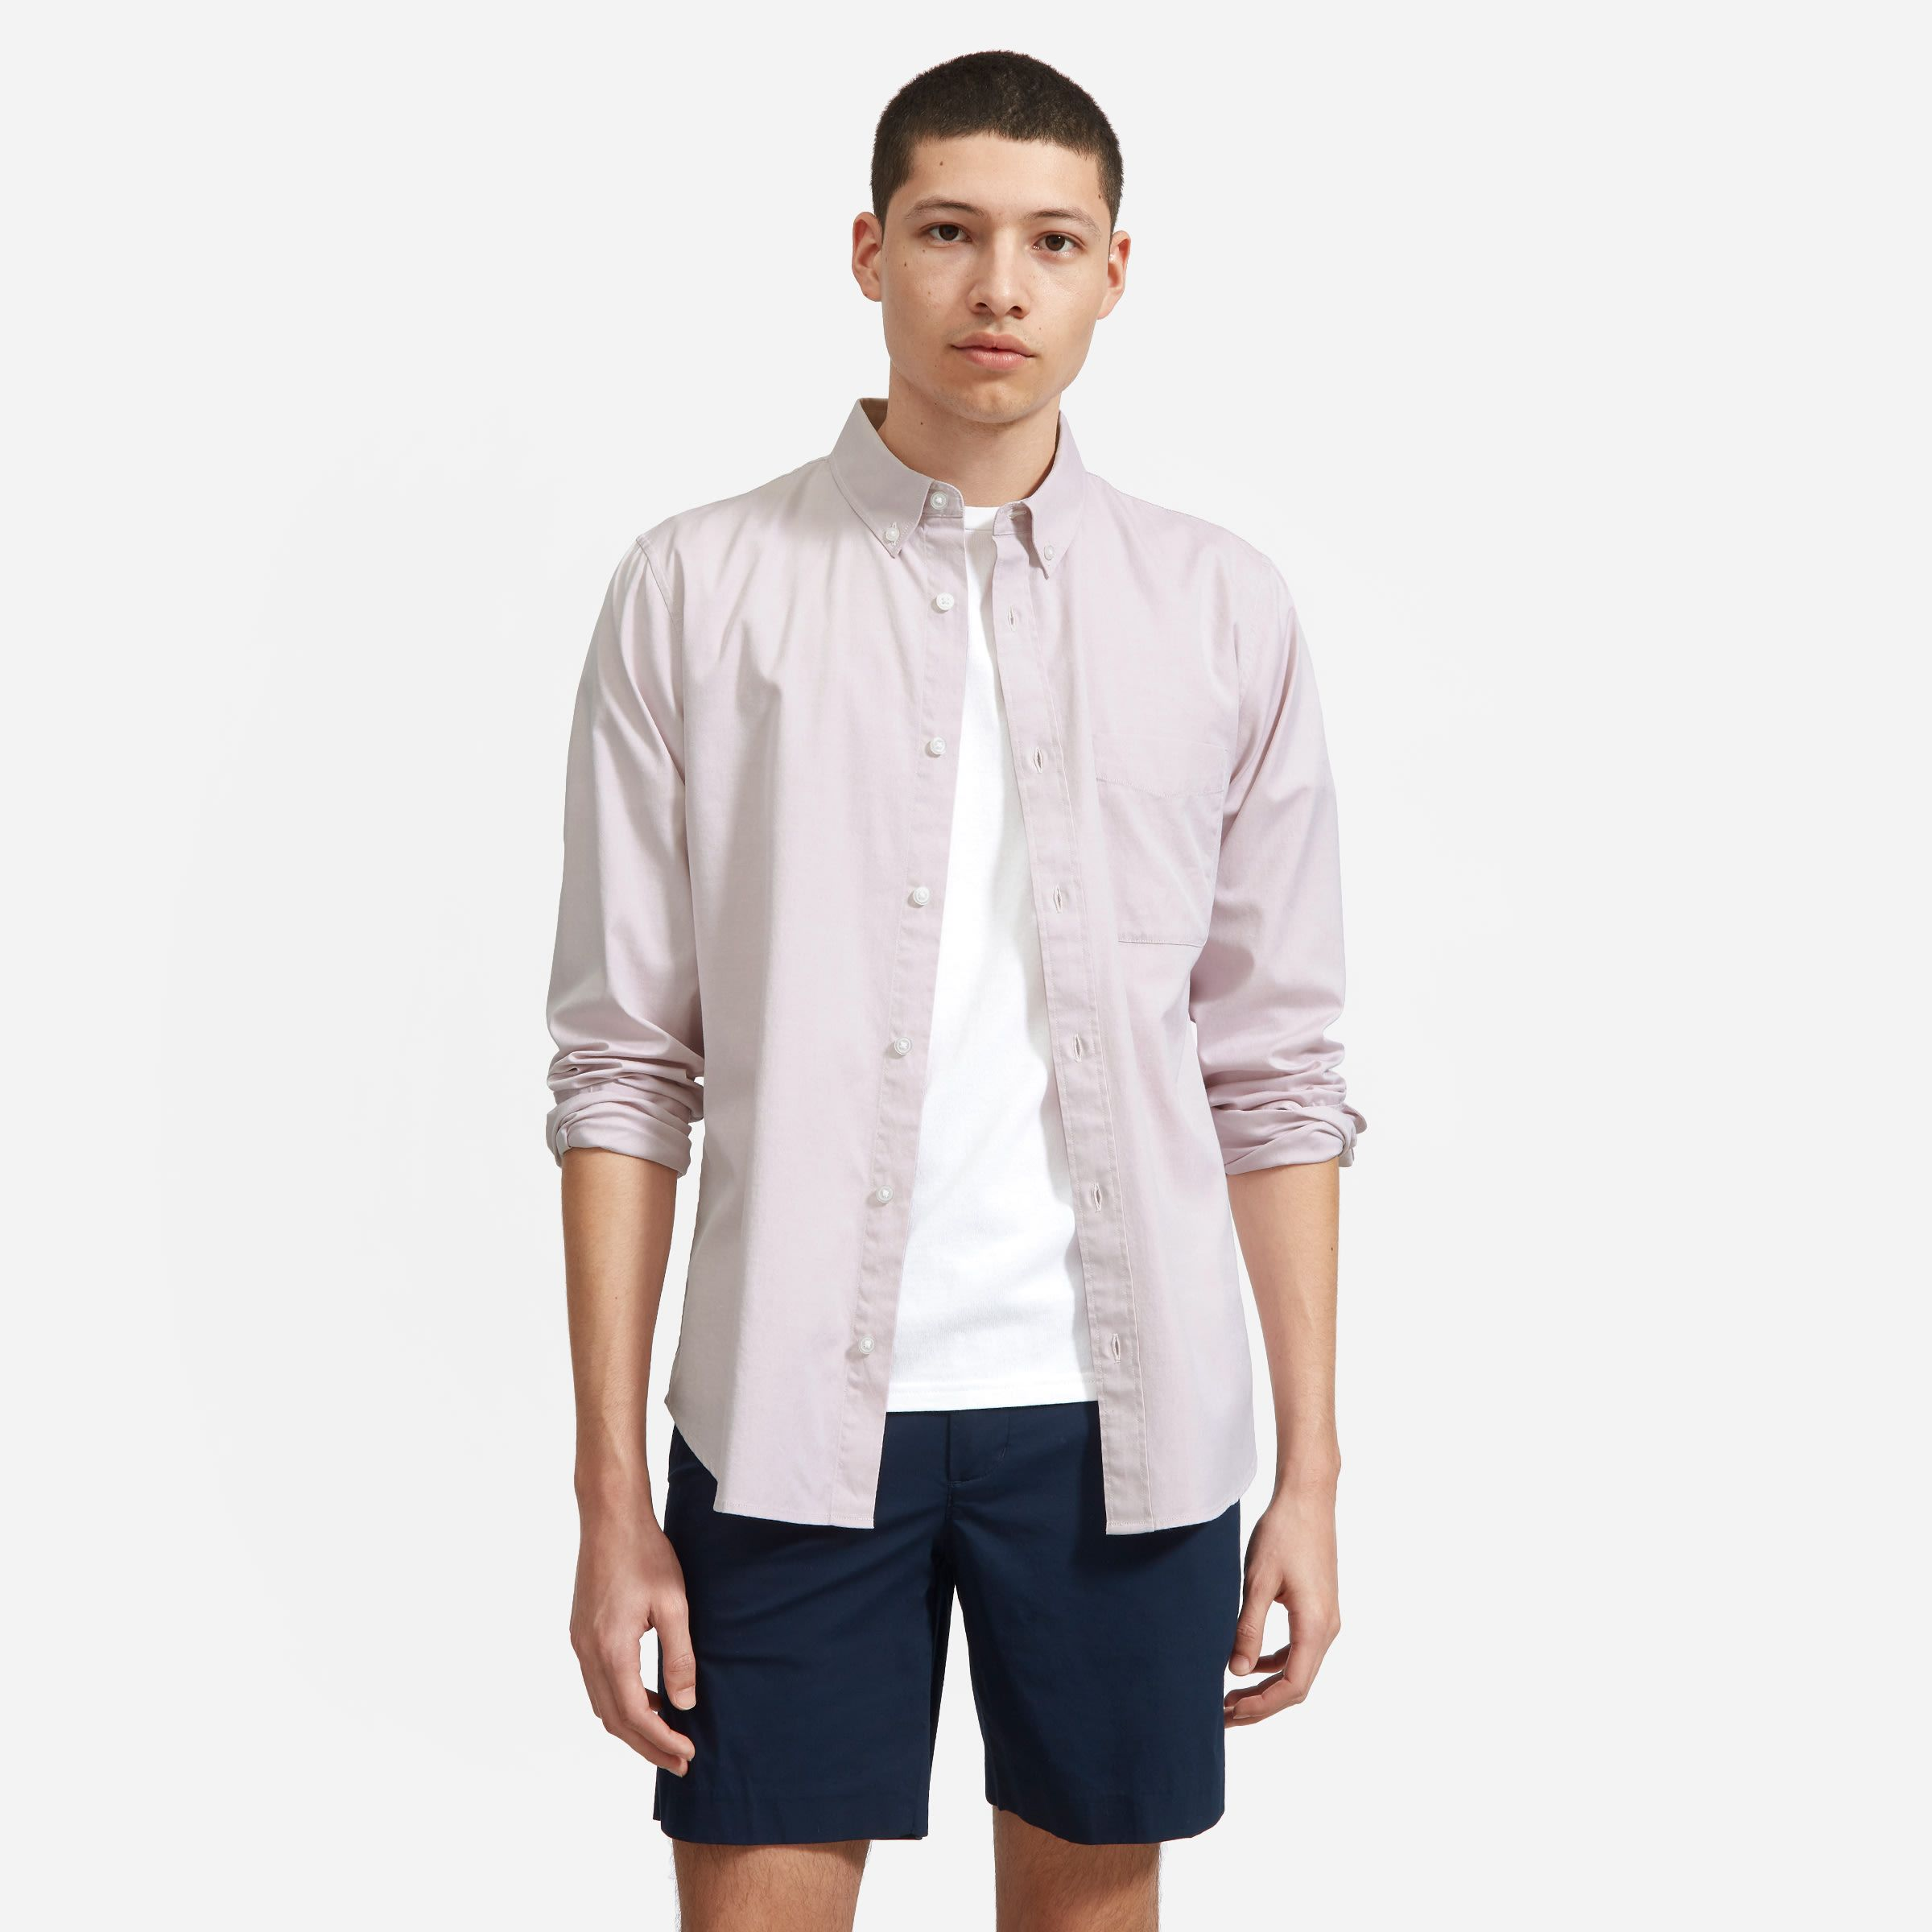 Men's Air Oxford Shirt by Everlane in Pale Woodrose